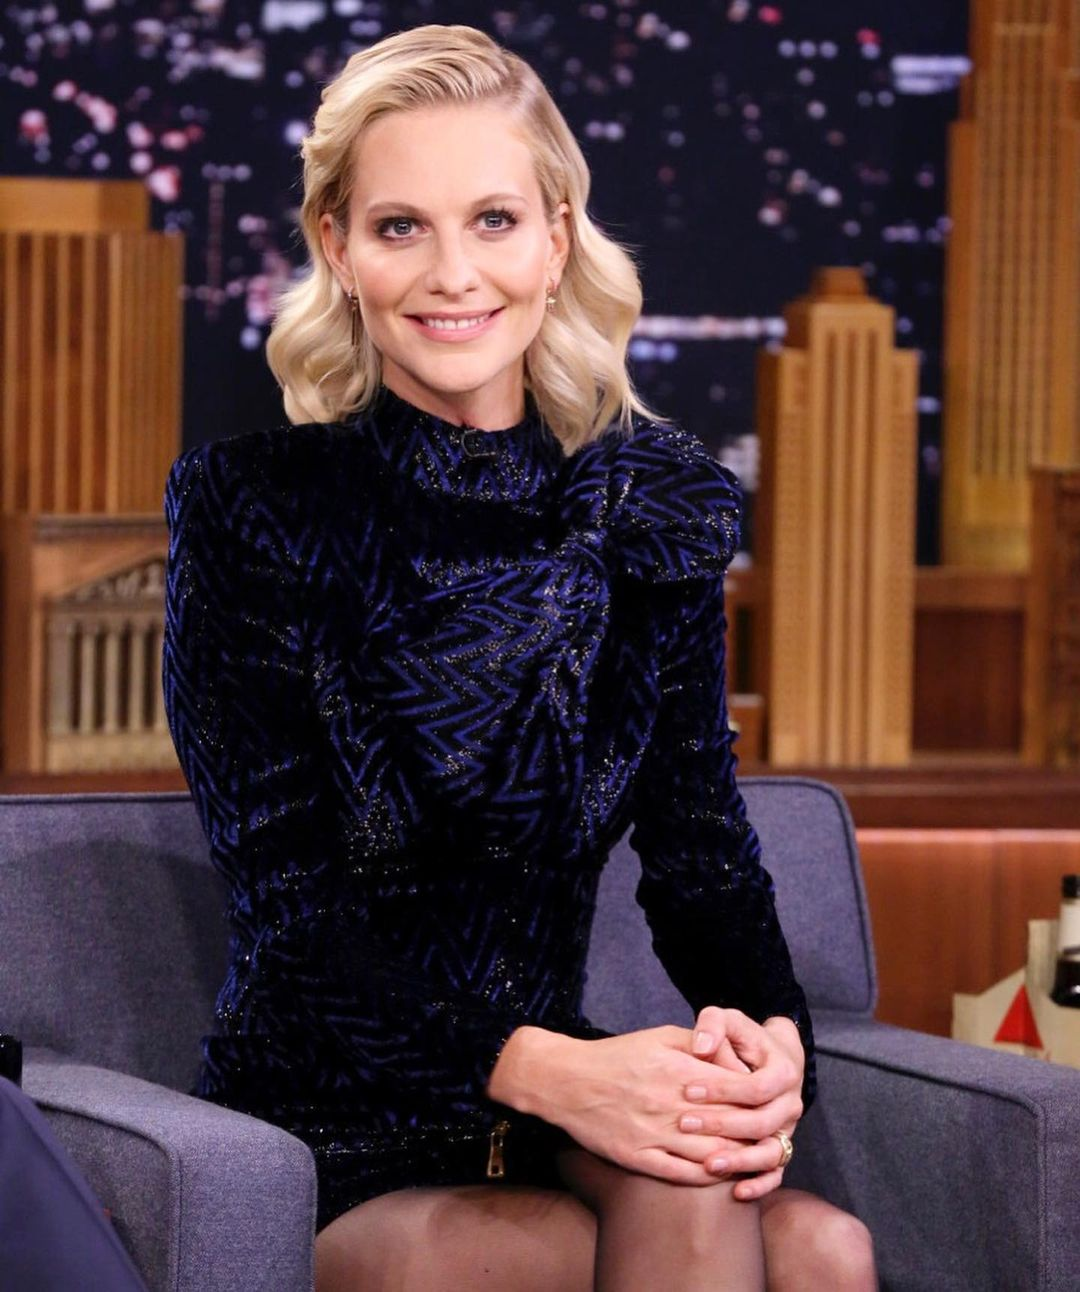 Poppy Delevingne is increasing her popularity with 1.7 million followers on Instagram 1